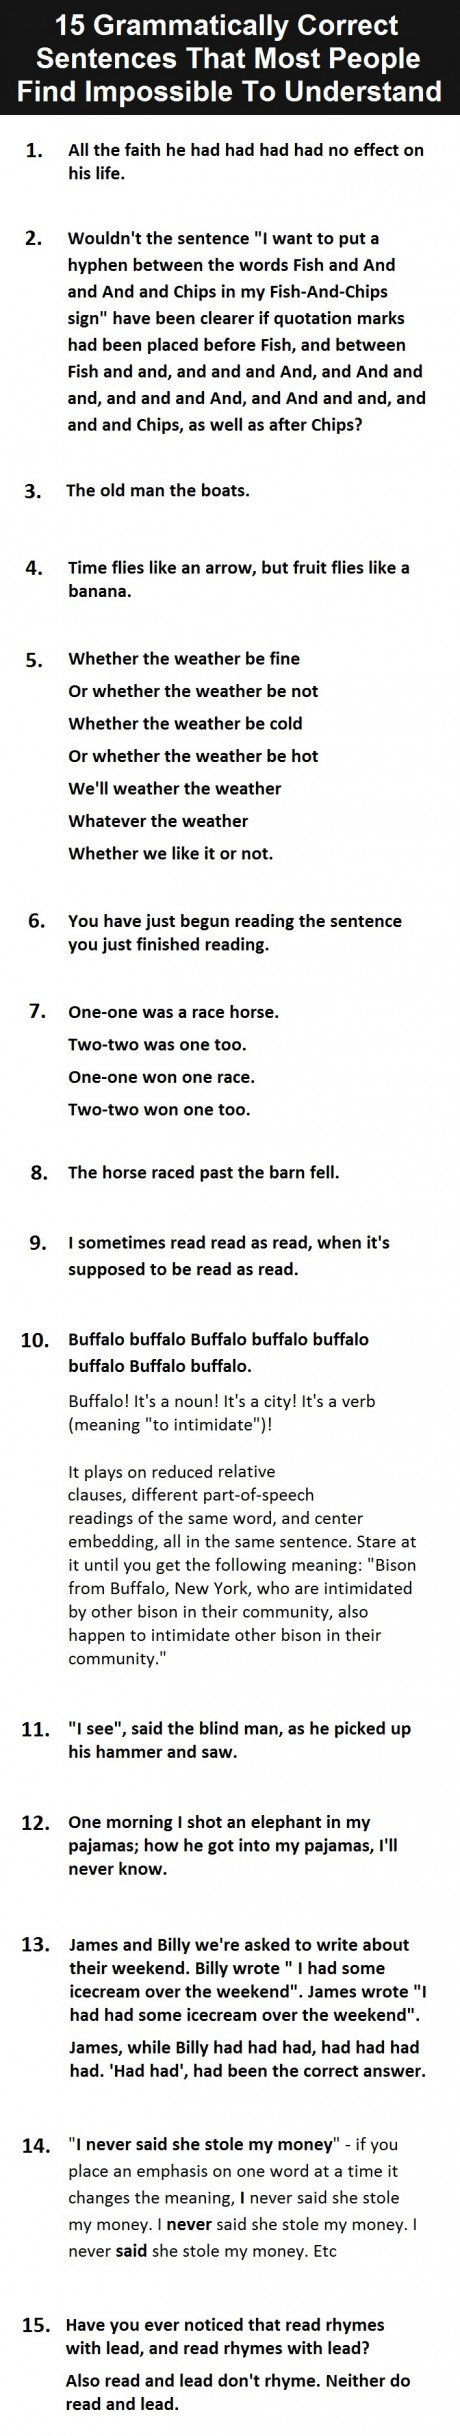 15-grammatically-correct-sentences-that-most-people-find-impossible-to-understand-list